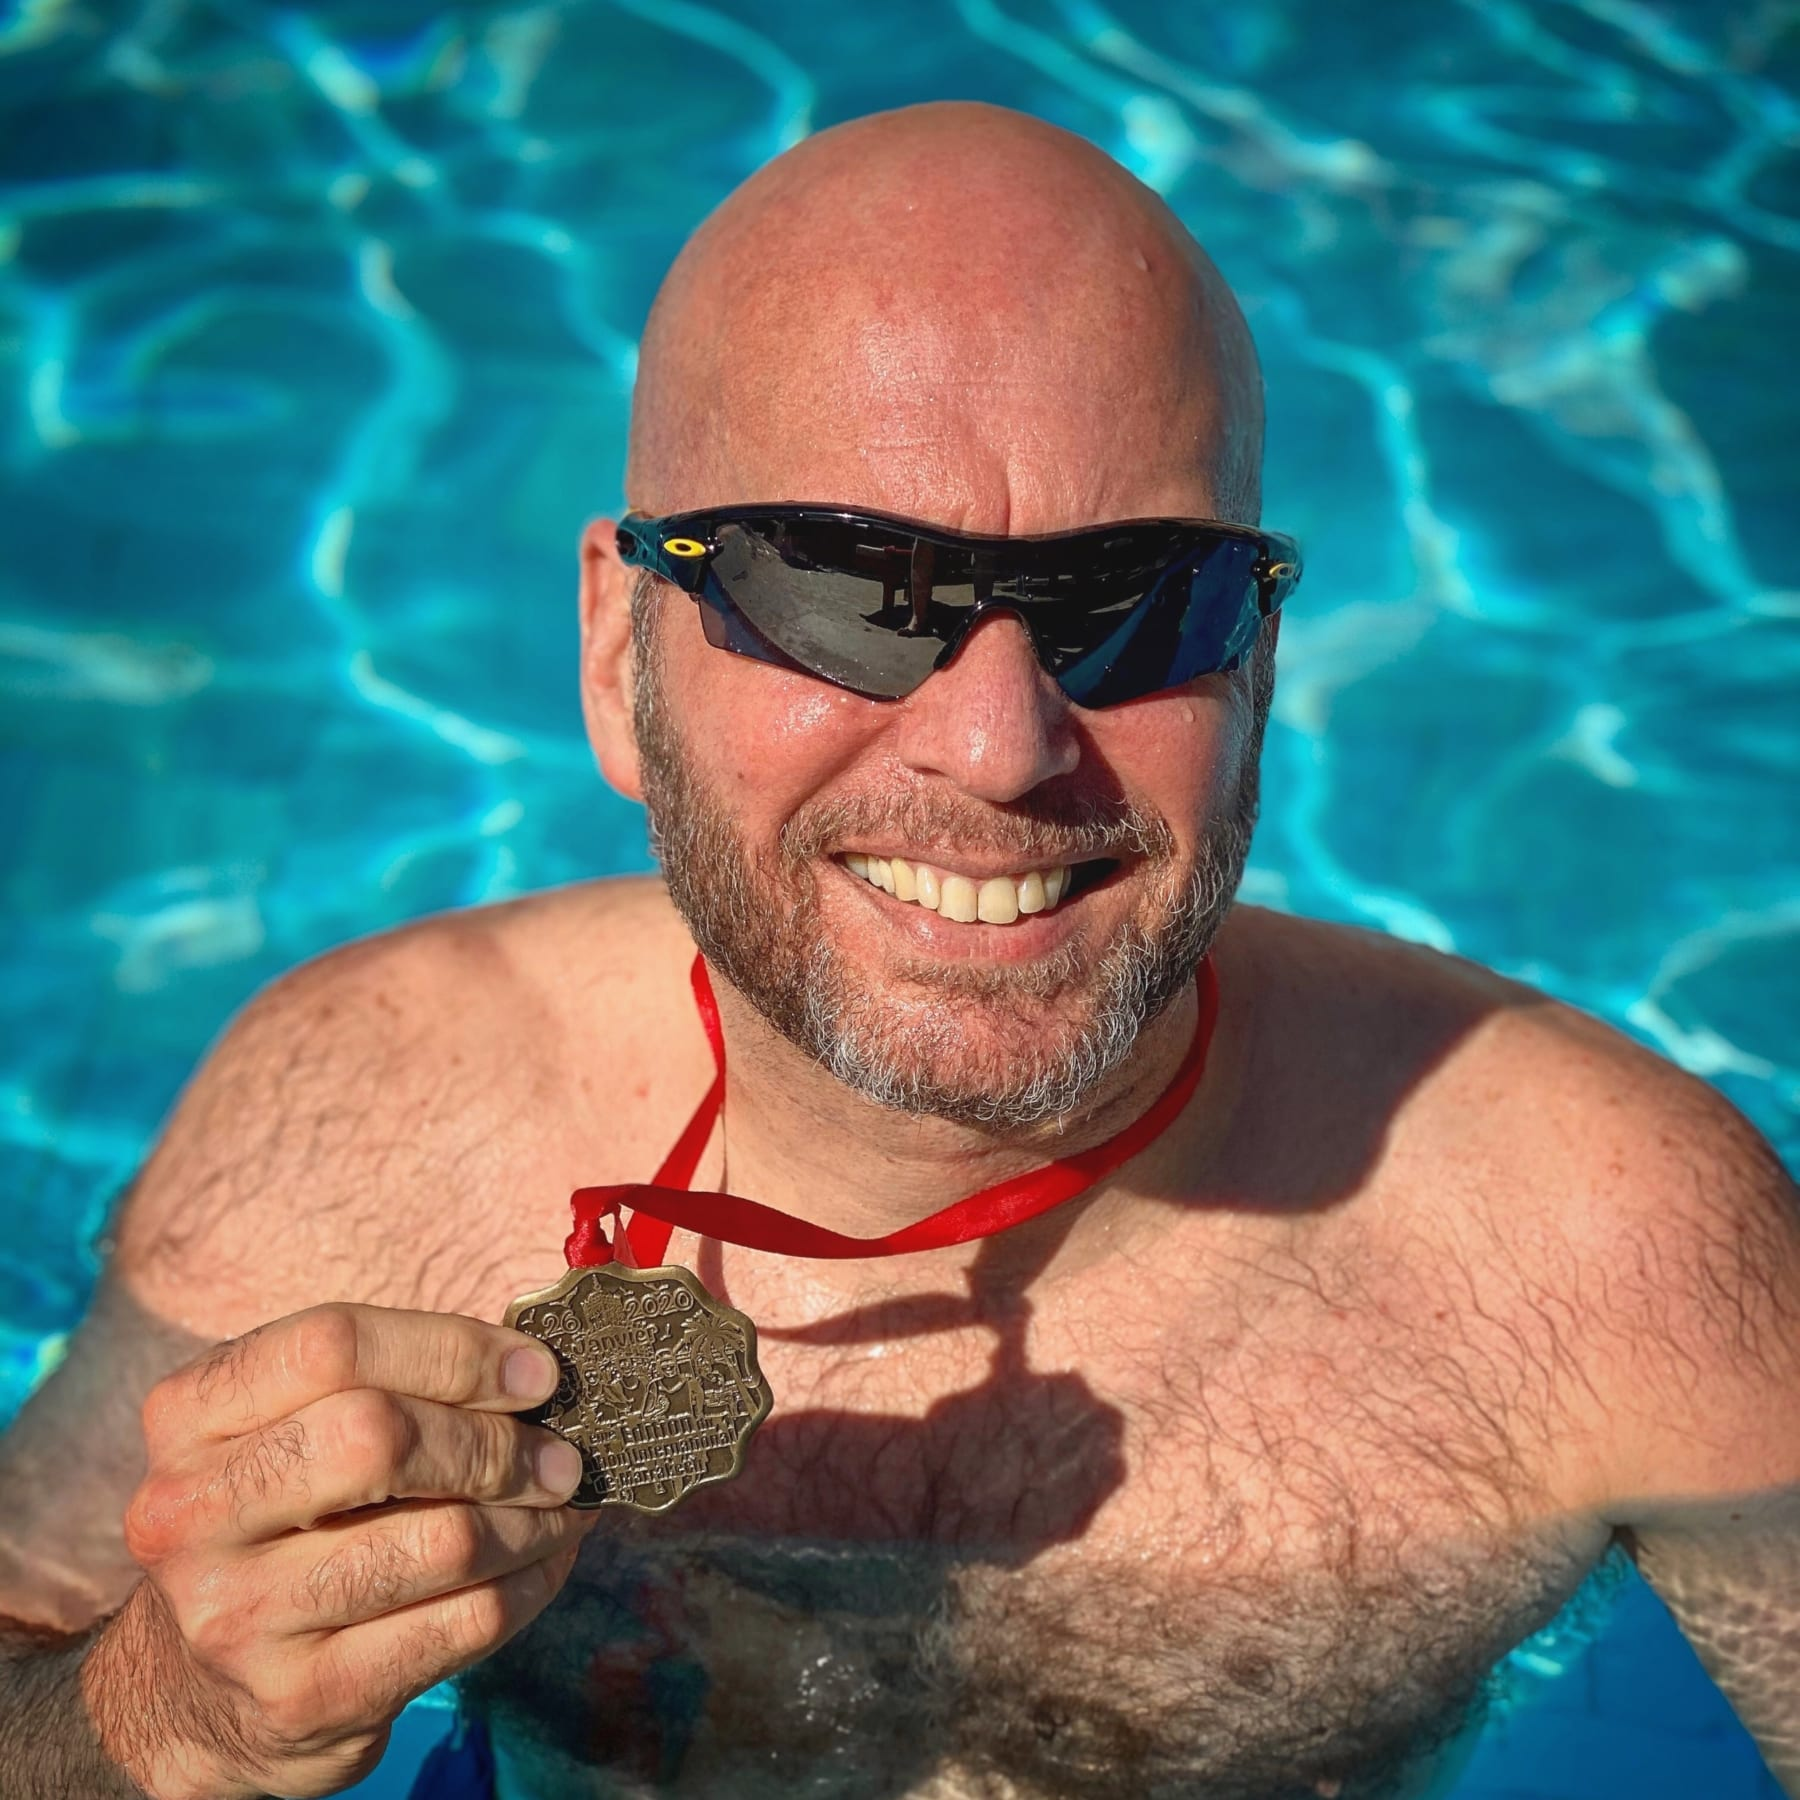 Image of Jonathan Acott in a pool showing off his medal from the Marrakesh Marathon. Read about his journey to run the world and how the Austin Marathon is next!